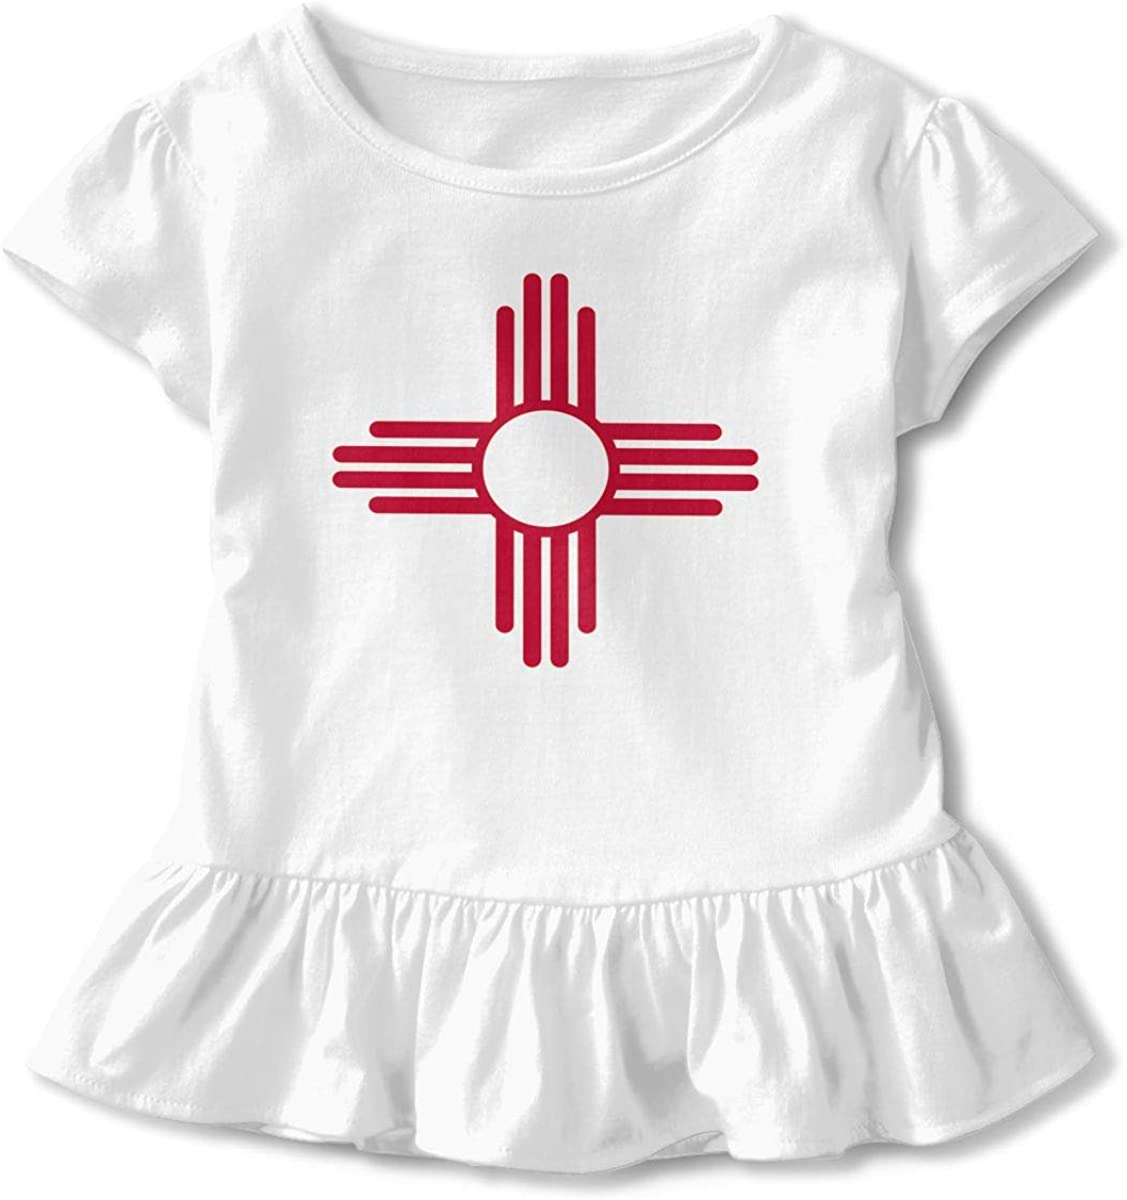 Cheng Jian Bo New Mexico Flag Toddler Girls T Shirt Kids Cotton Short Sleeve Ruffle Tee